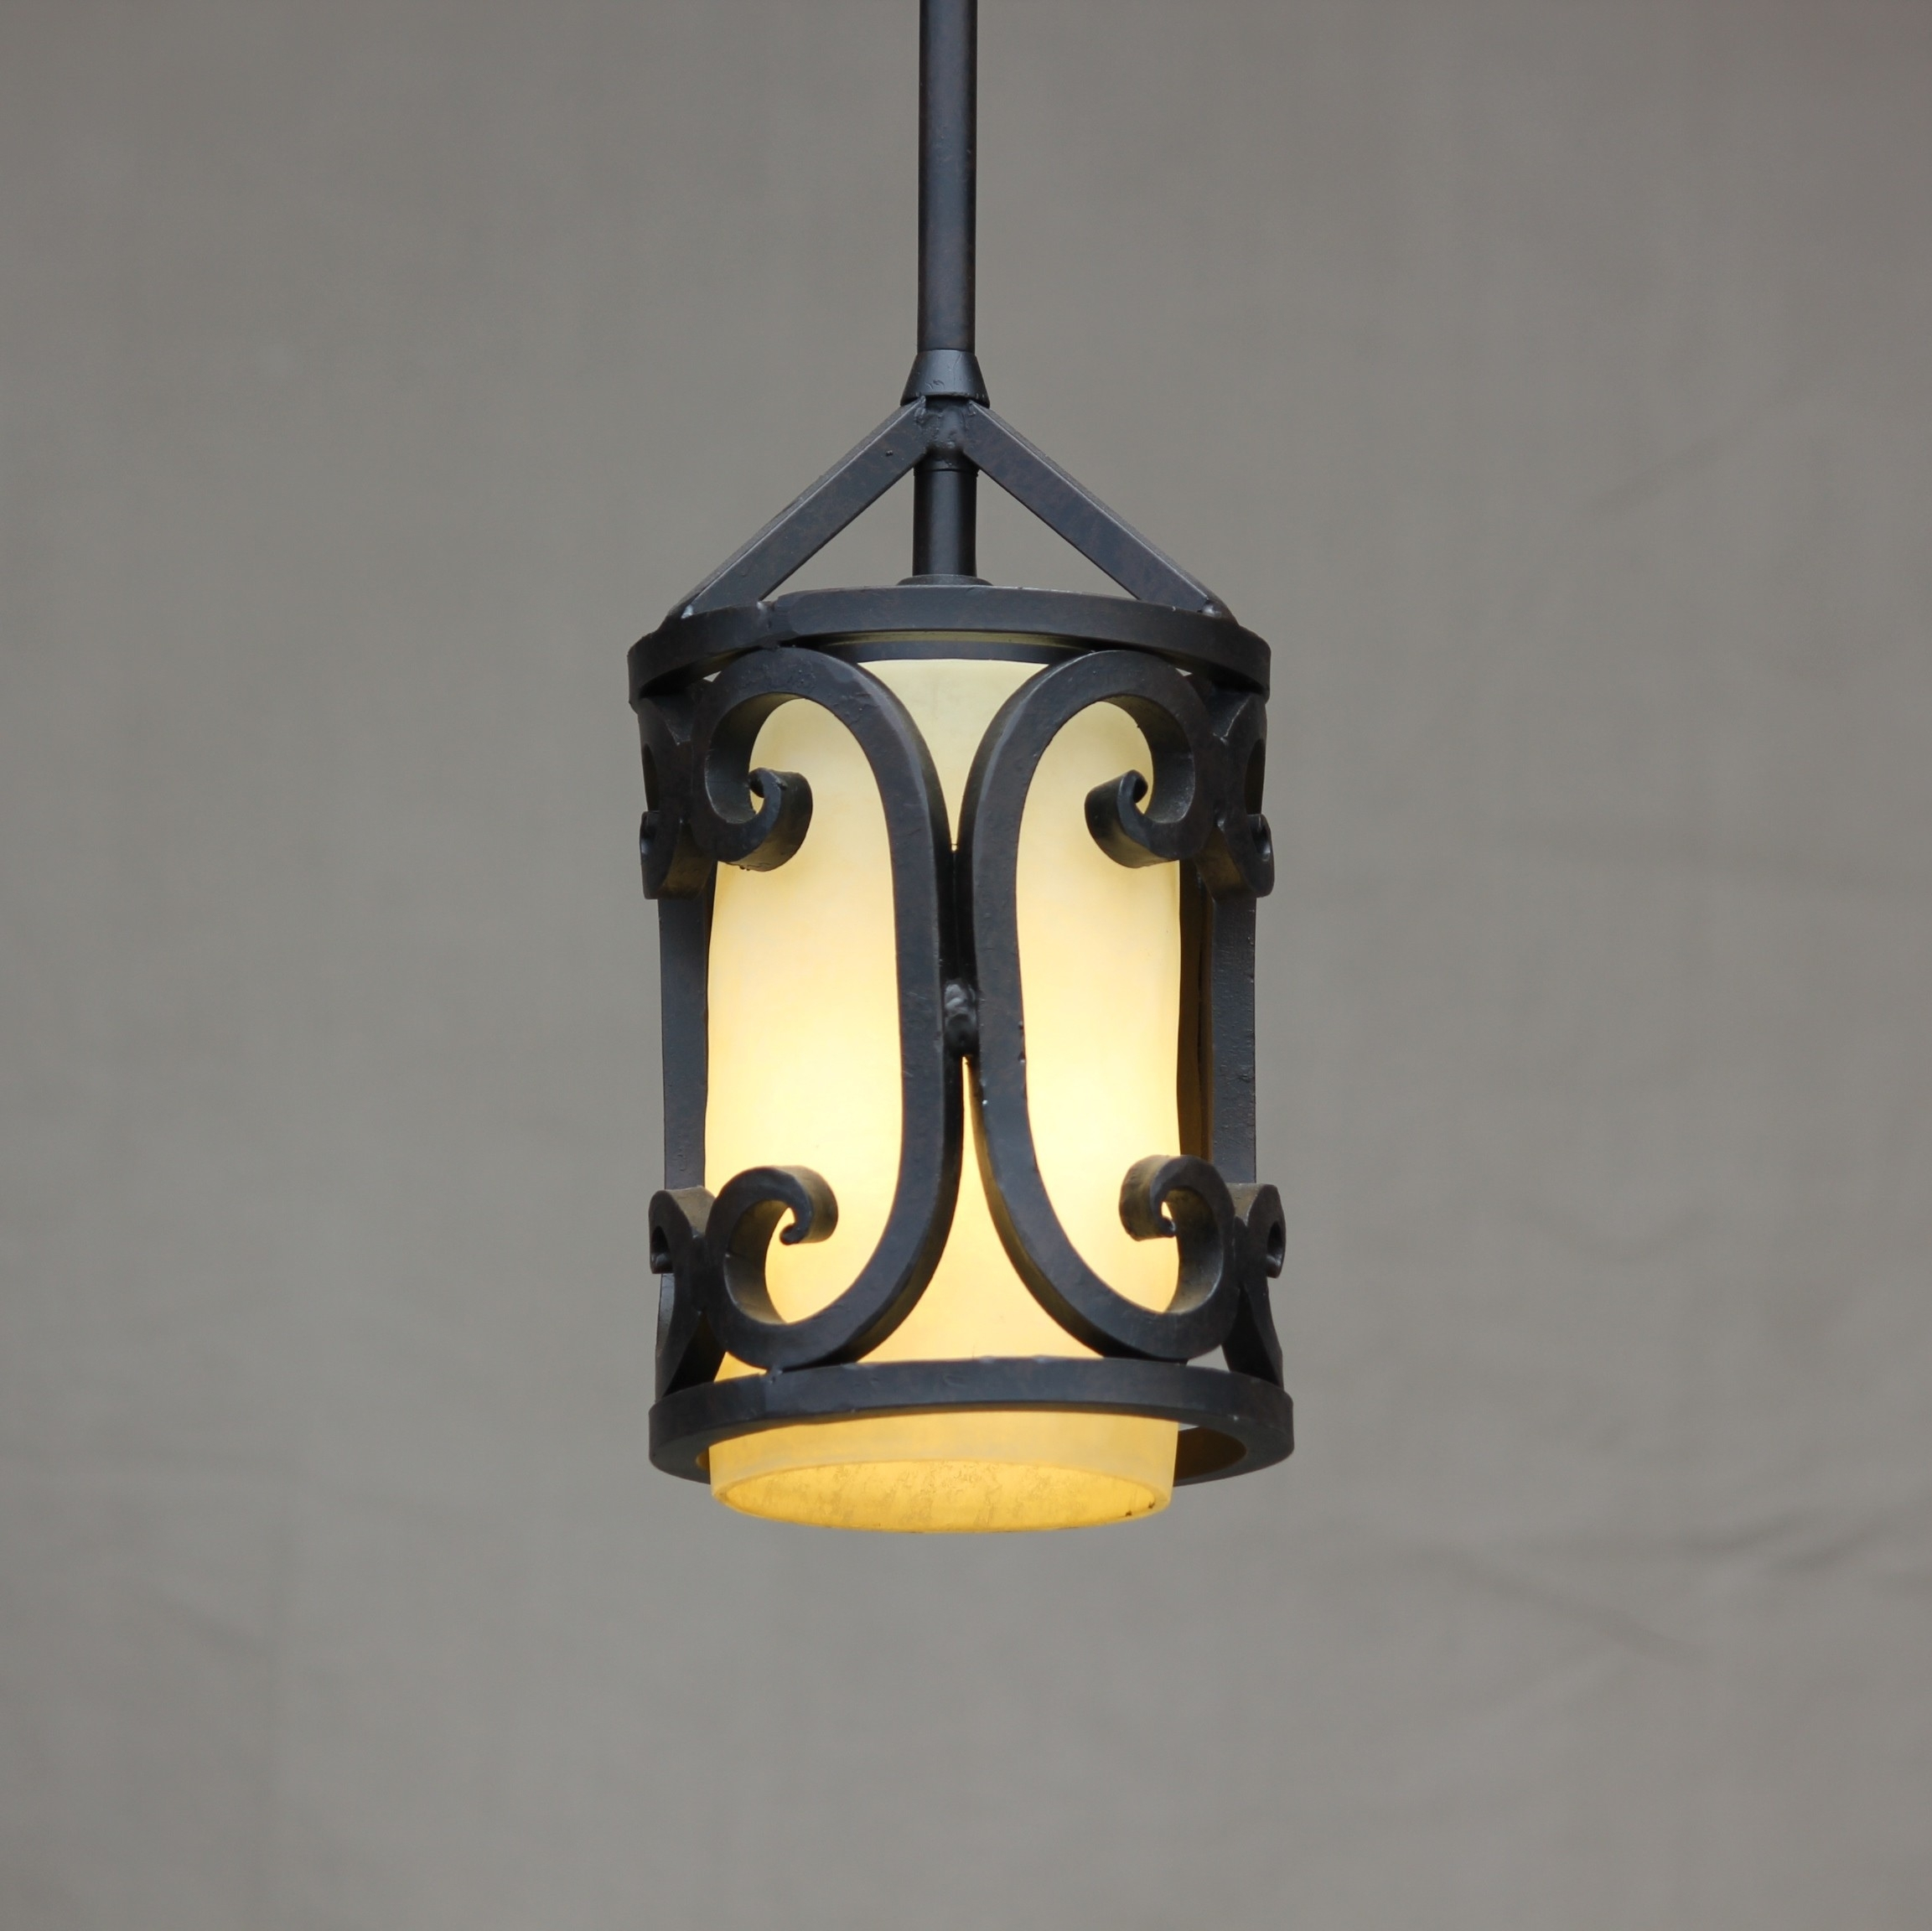 Lights Of Tuscany Mini Pendant Lighting – Ceiling Fixtures – Fixtures With Outdoor Iron Hanging Lights (#4 of 10)